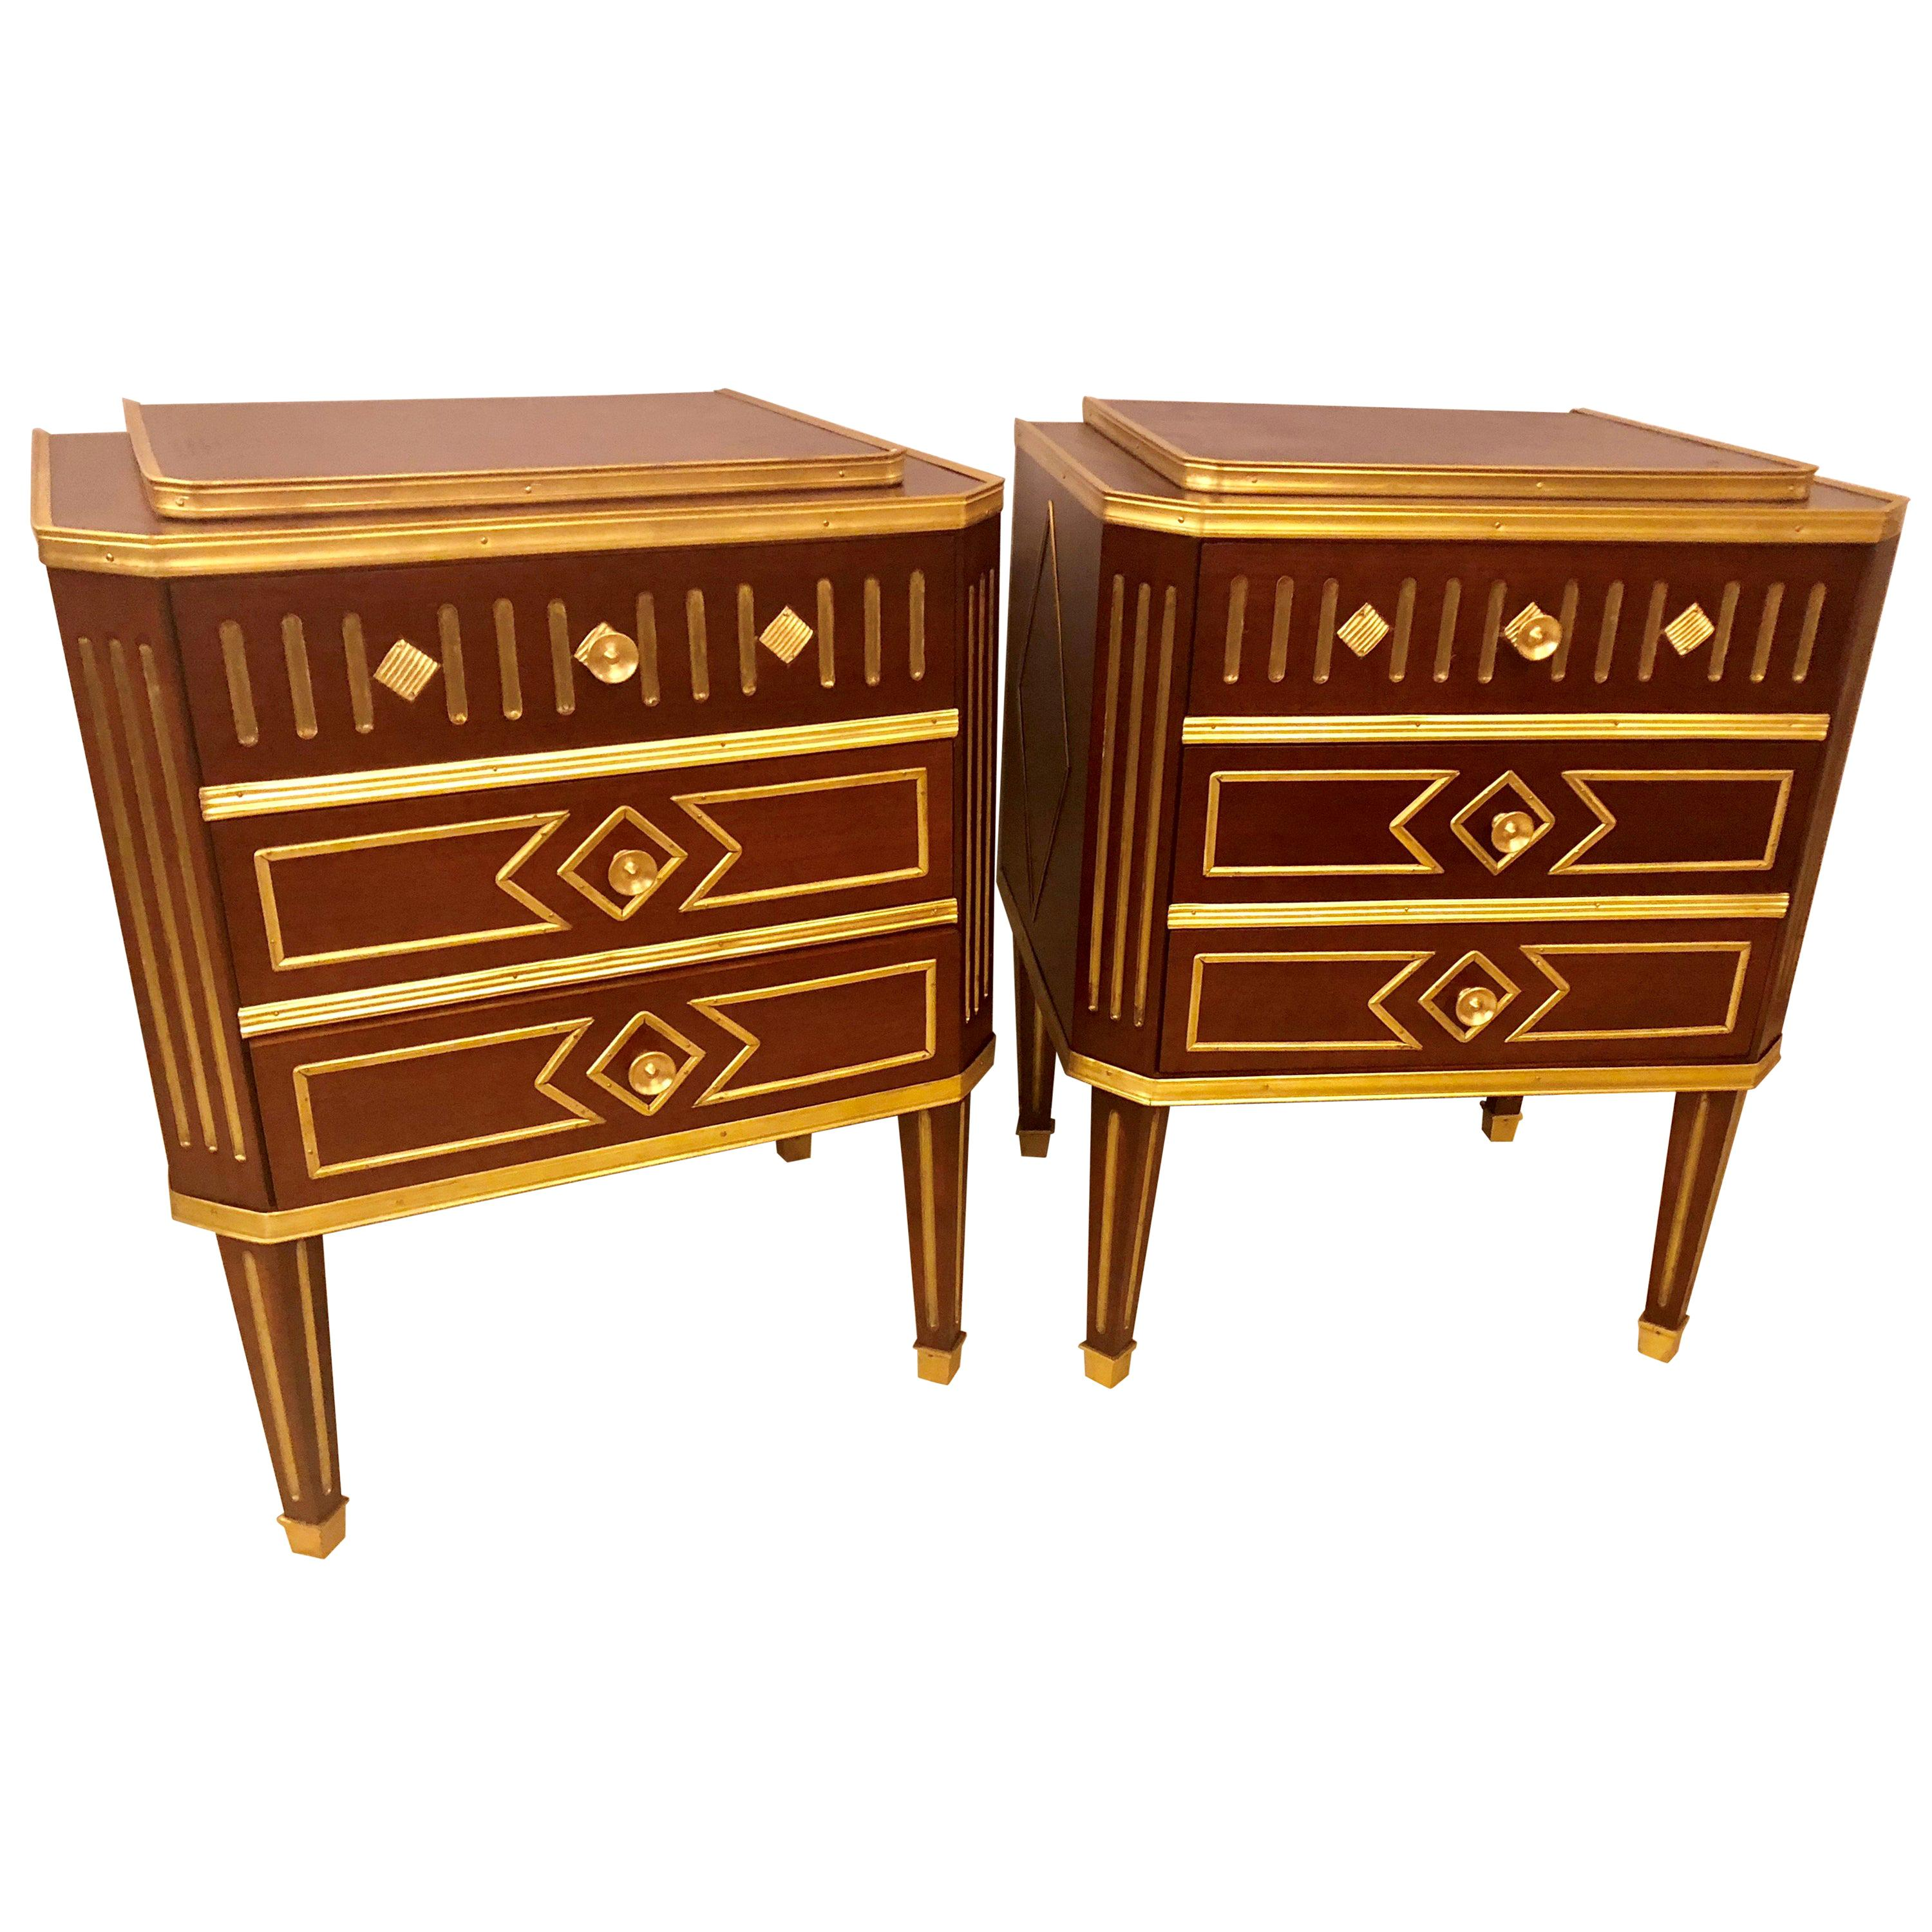 Pair of Mahogany Russian Neoclassical Three-Drawer End Tables or Nightstands